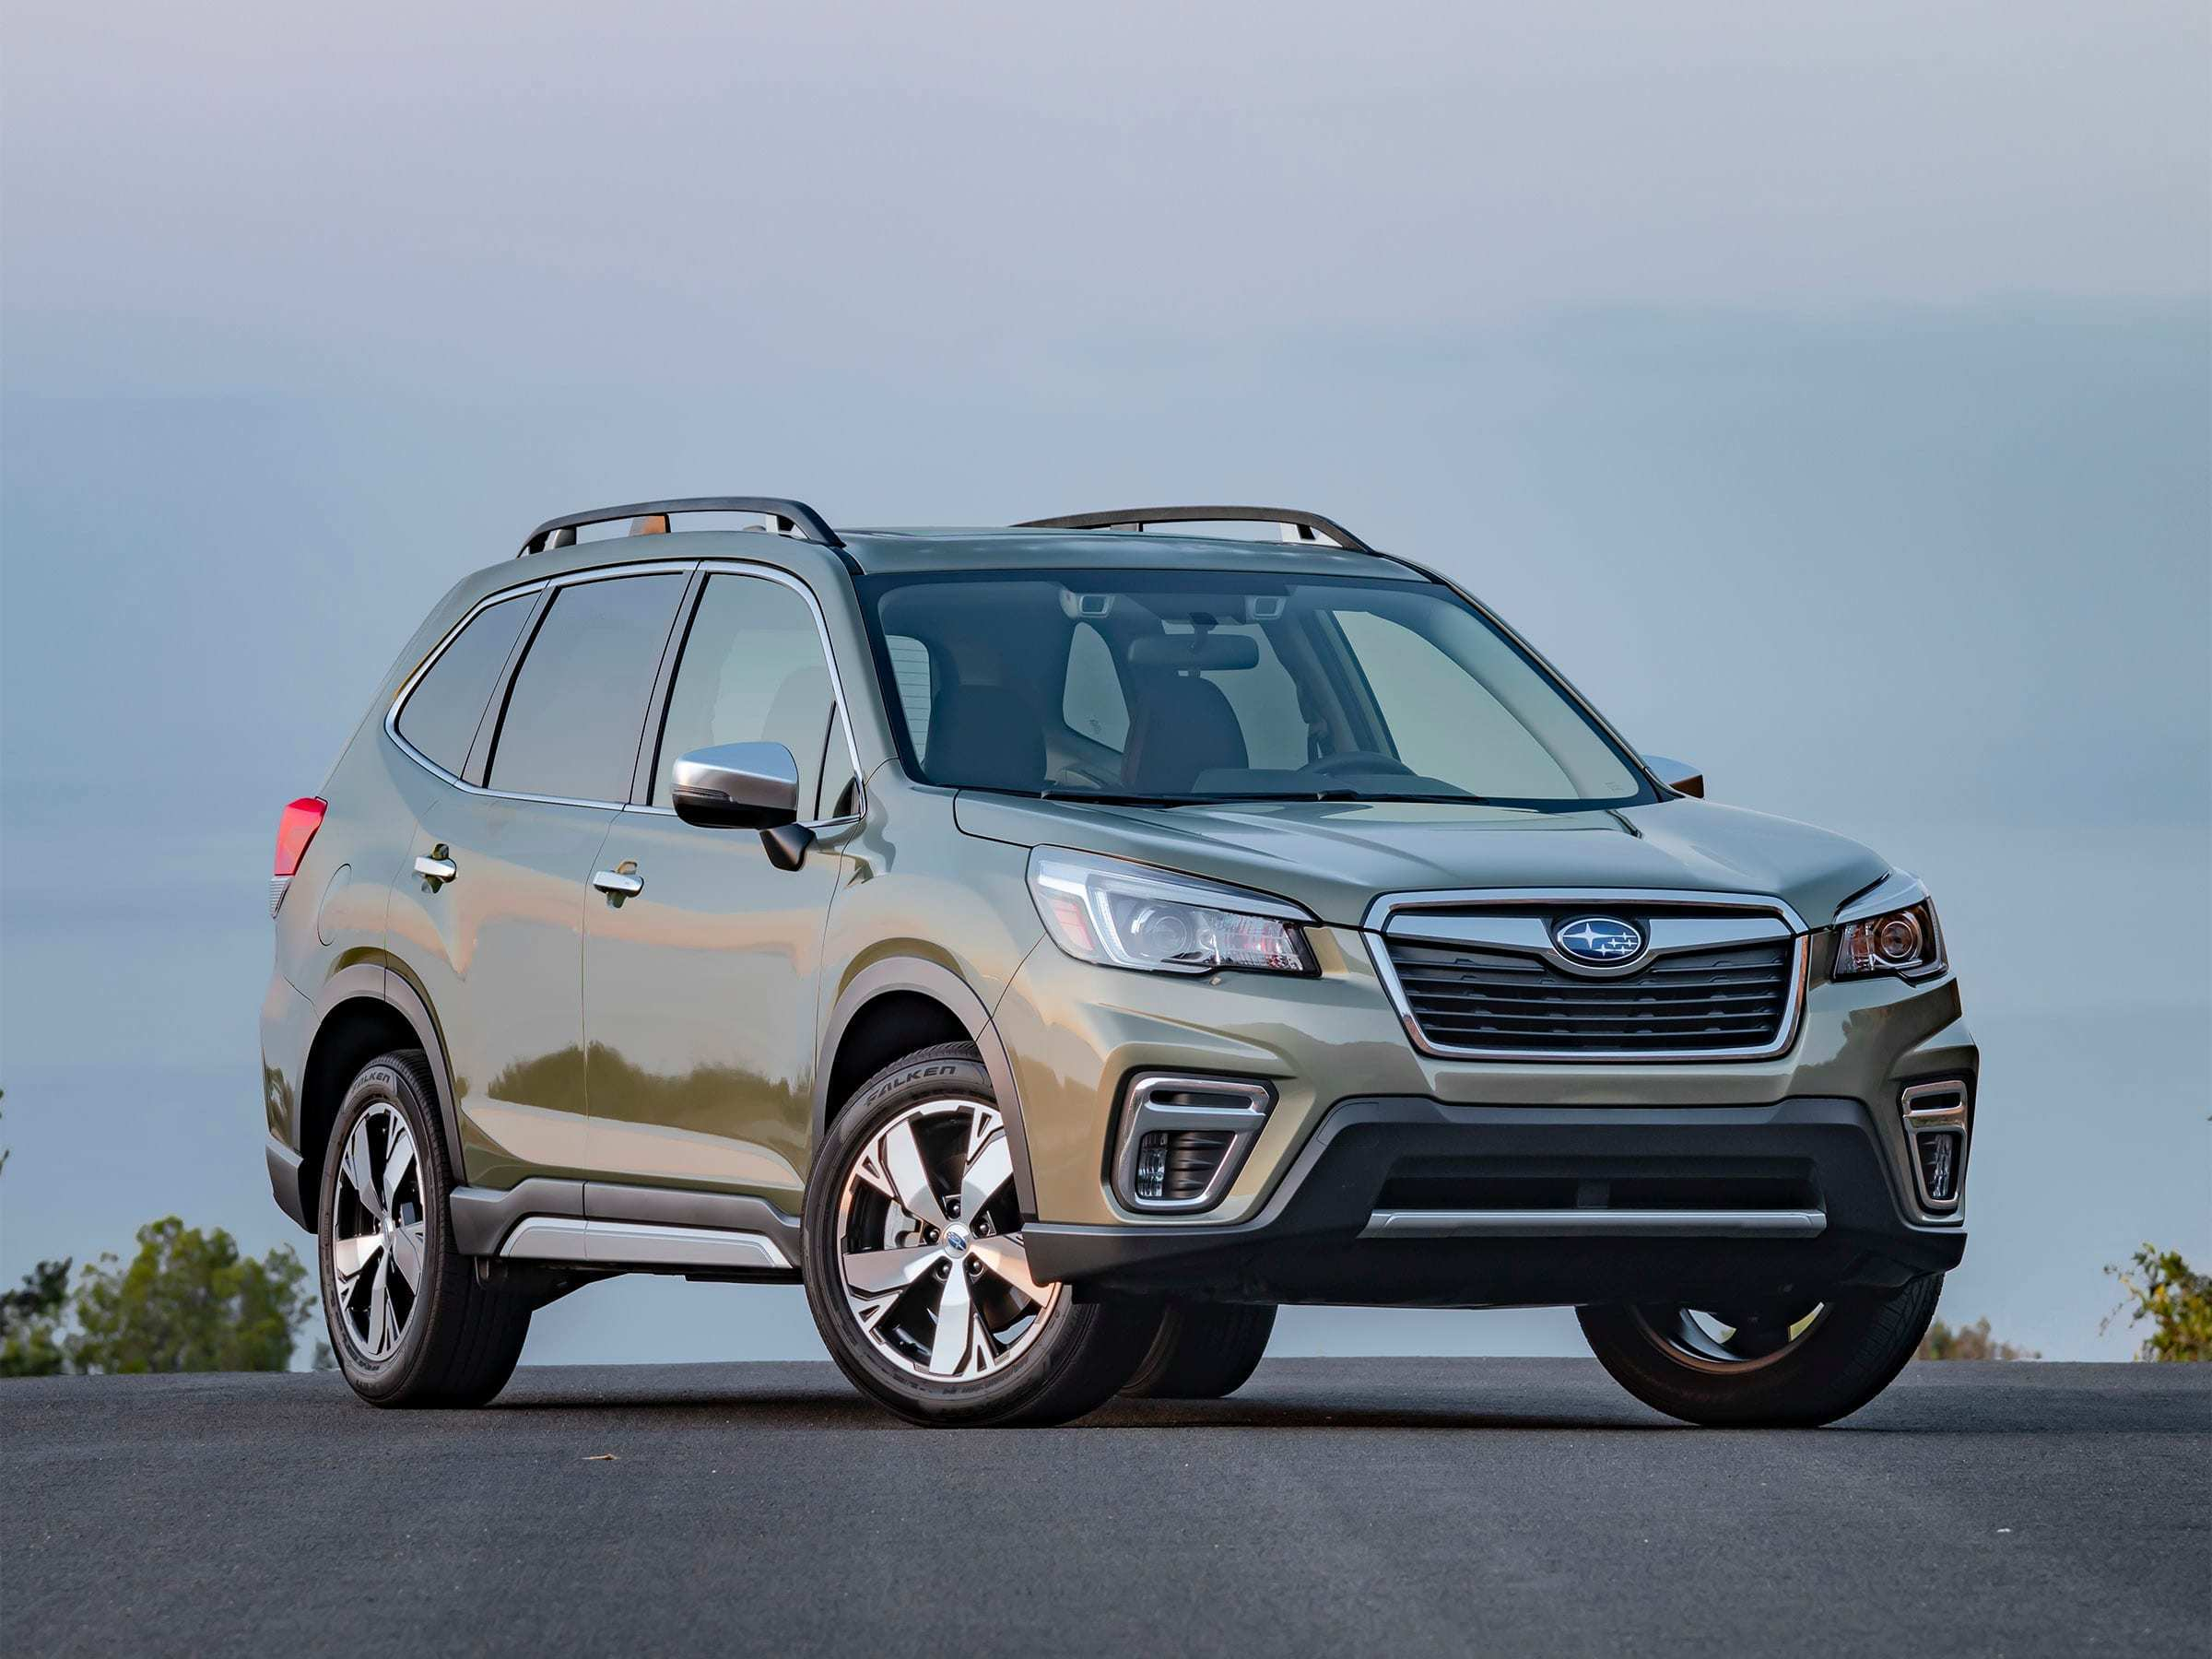 47 All New 2019 Subaru Forester Design Specs for 2019 Subaru Forester Design